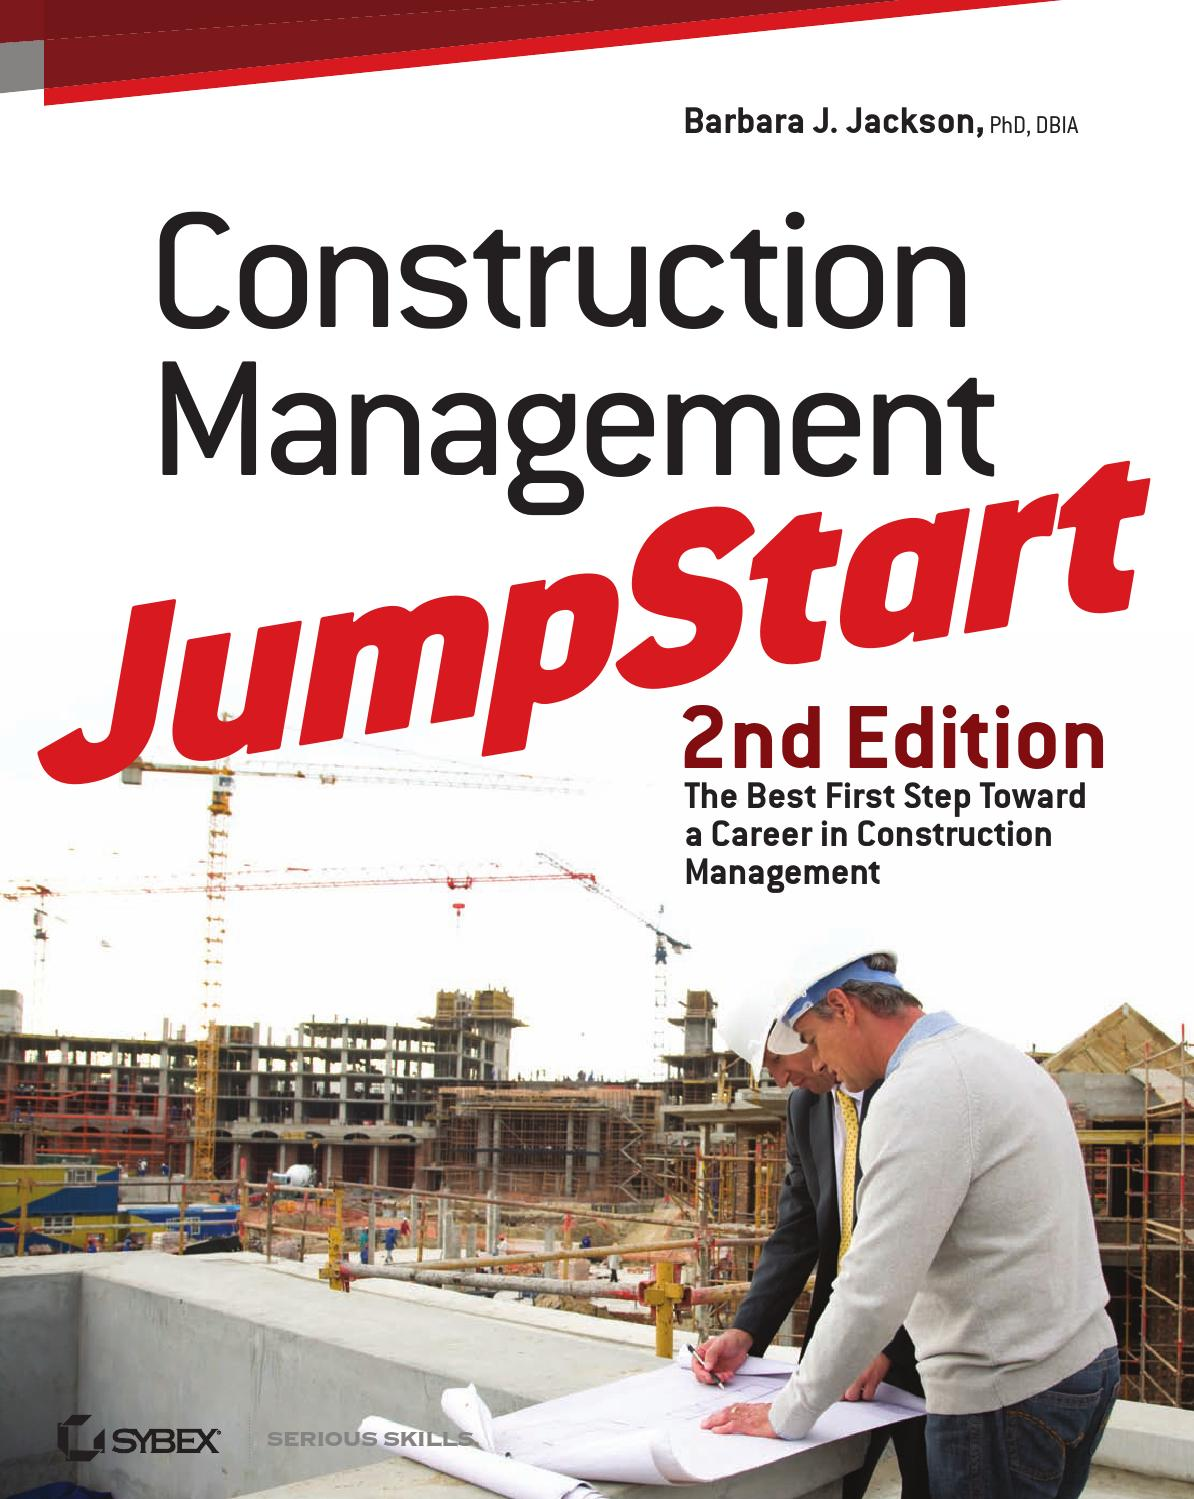 I need an idea for a term paper, its for a Construction Management course.?